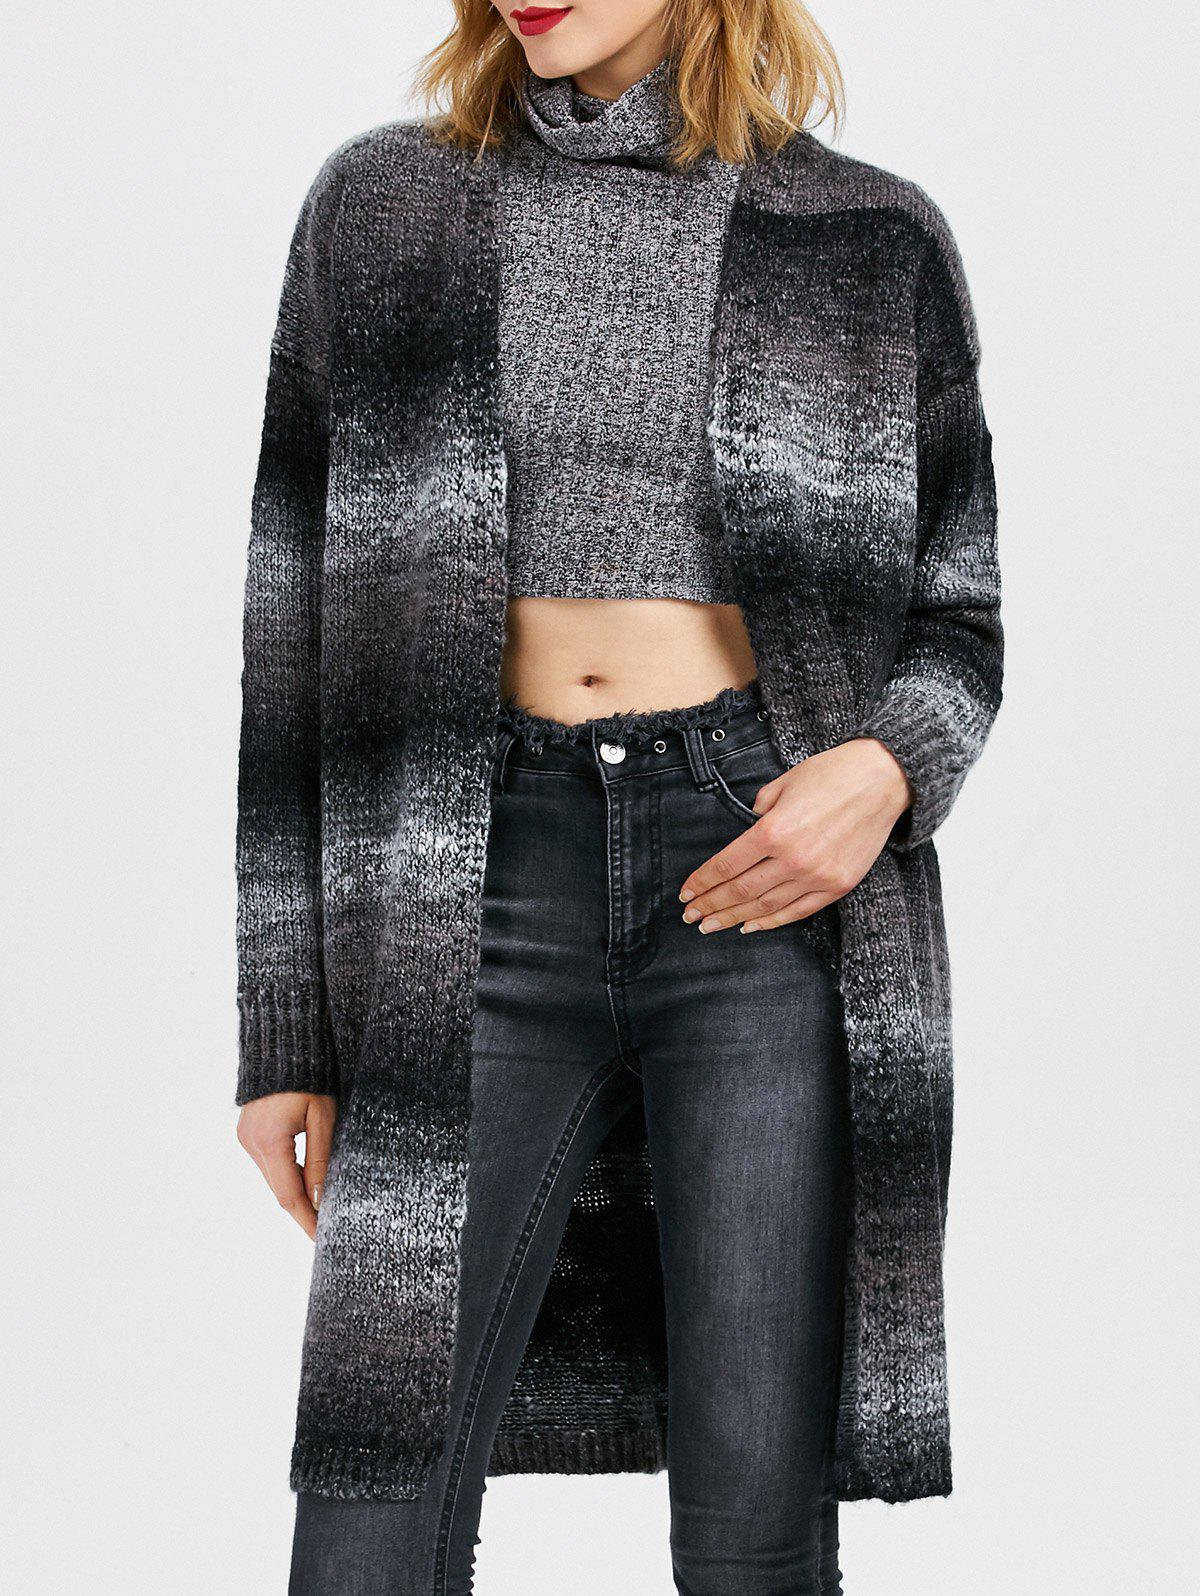 Collarless Knit Open Front Cardigan inc new beige women s small s marled knit open front cardigan sweater $89 201